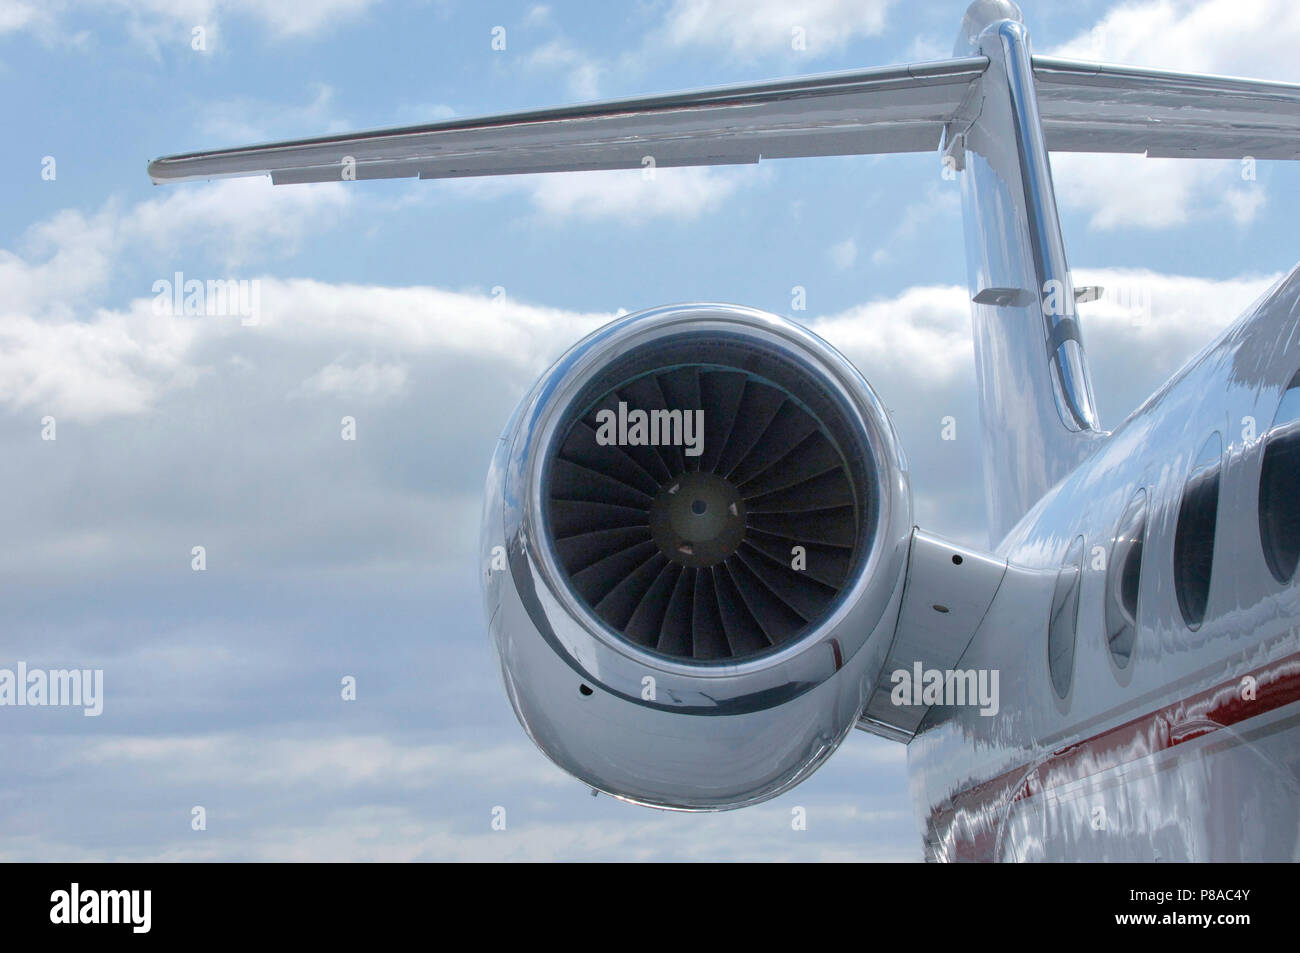 Aviation Company Stock Photos & Aviation Company Stock Images - Alamy